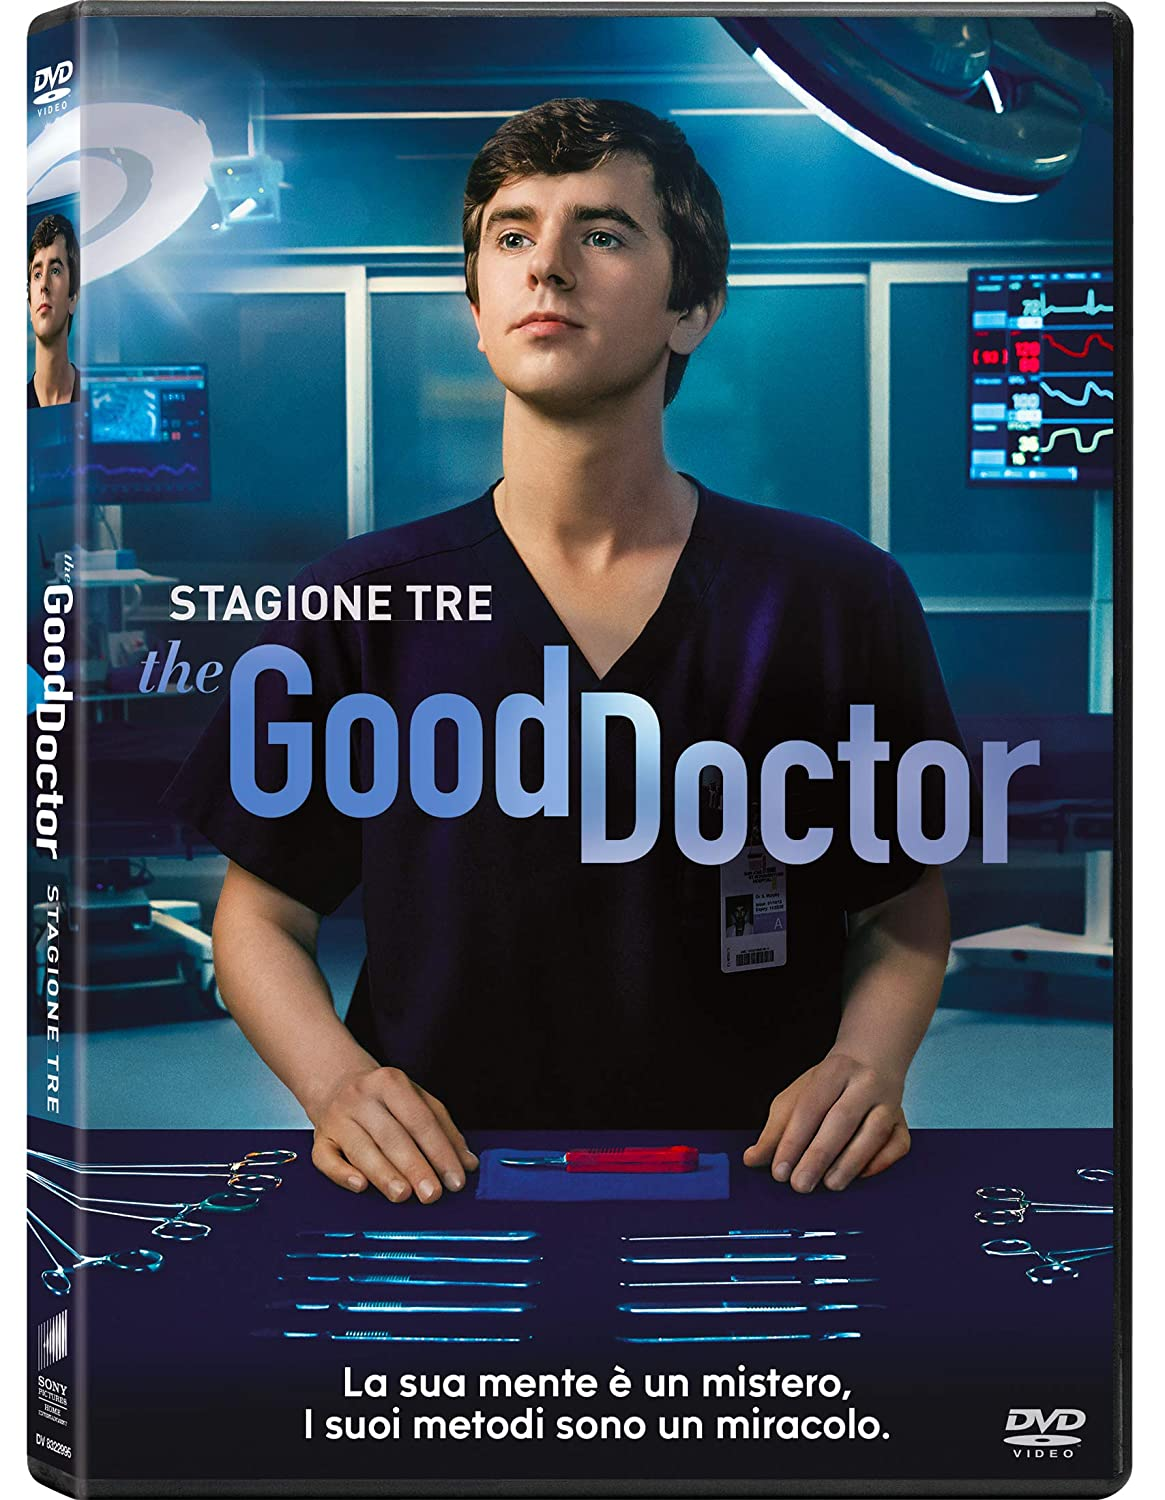 COF.THE GOOD DOCTOR - STAGIONE 03 (5 DVD) (DVD)